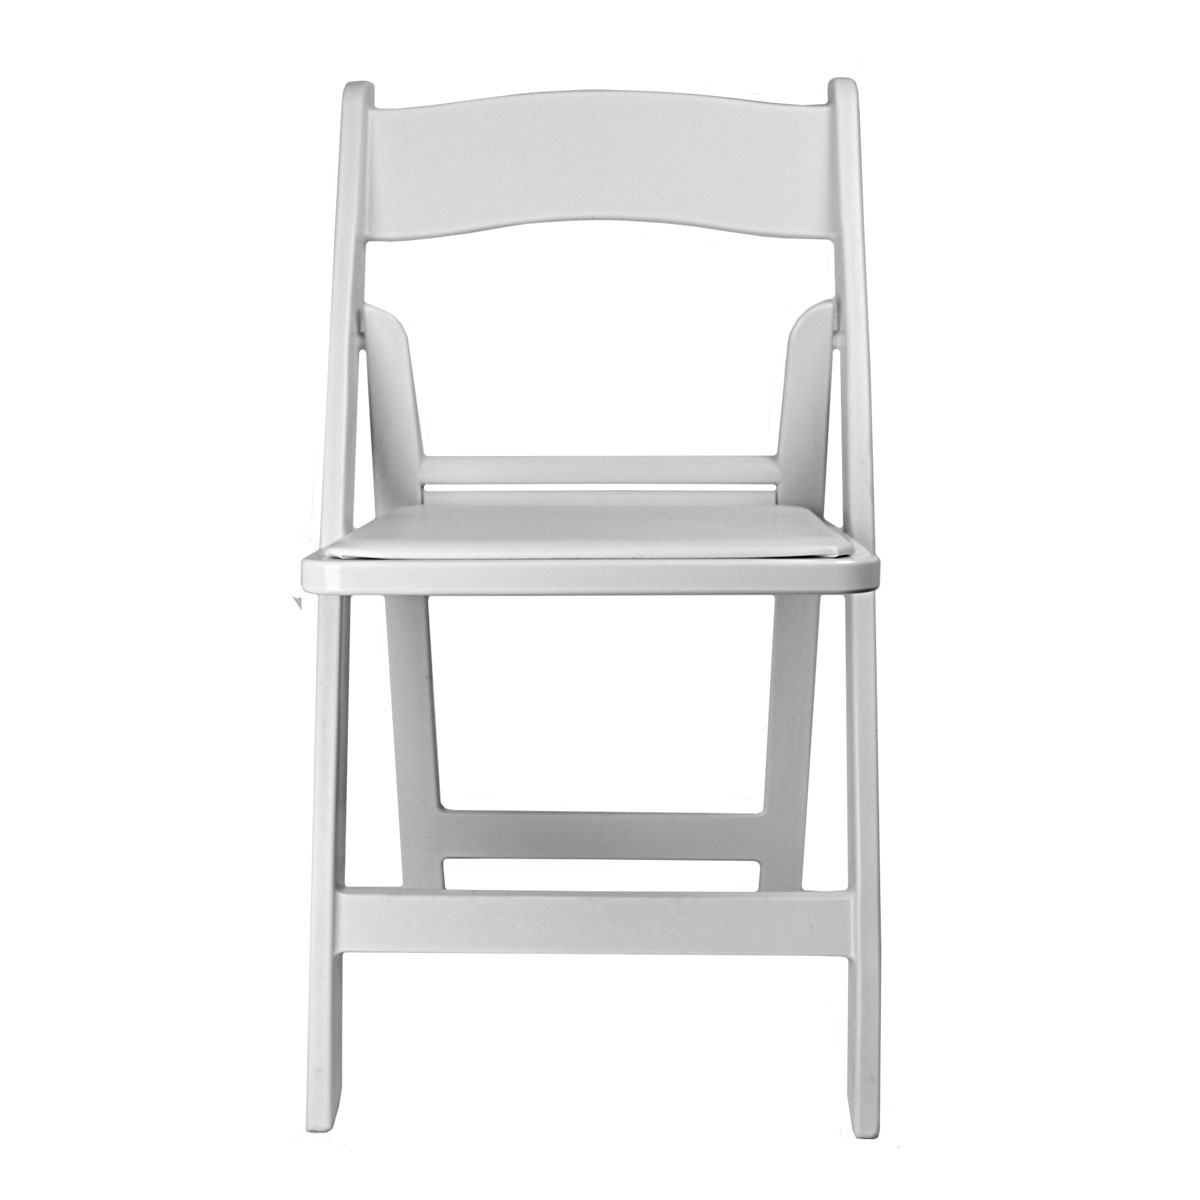 Chair White Garden Folding With Padded Seat